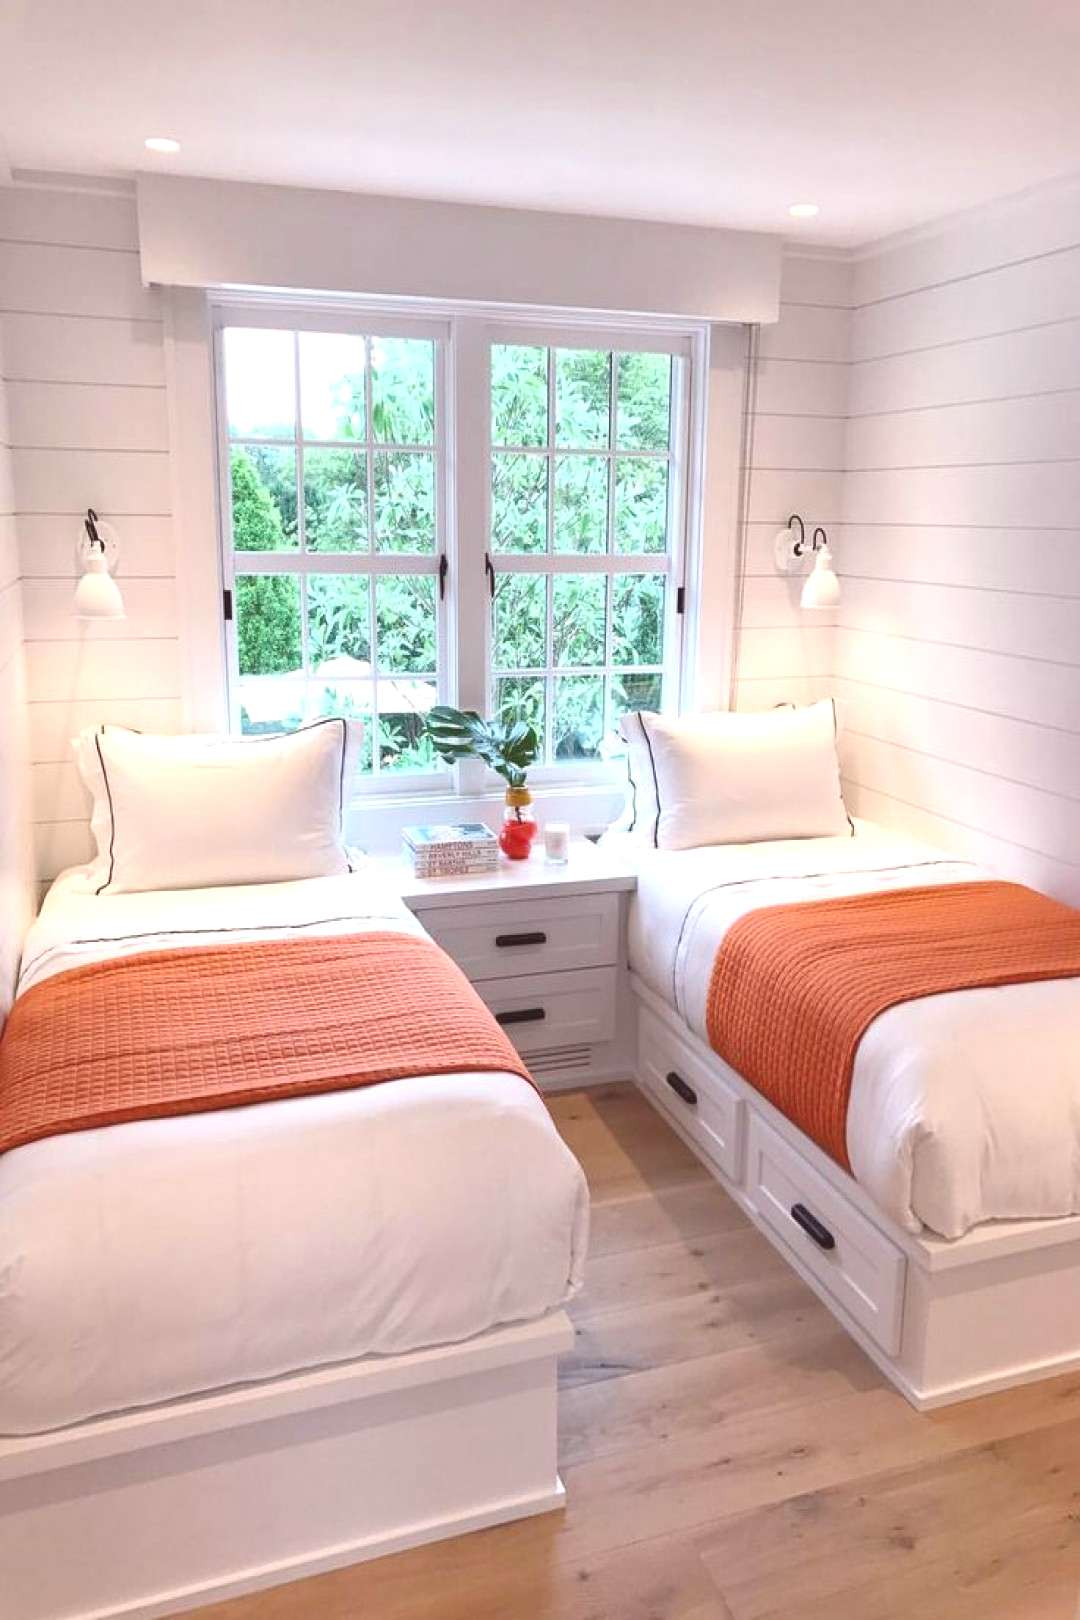 Cozy room. -Like bed linen. Blue striped bed skirt with orange blankets? ... Cozy room. -Like bed l